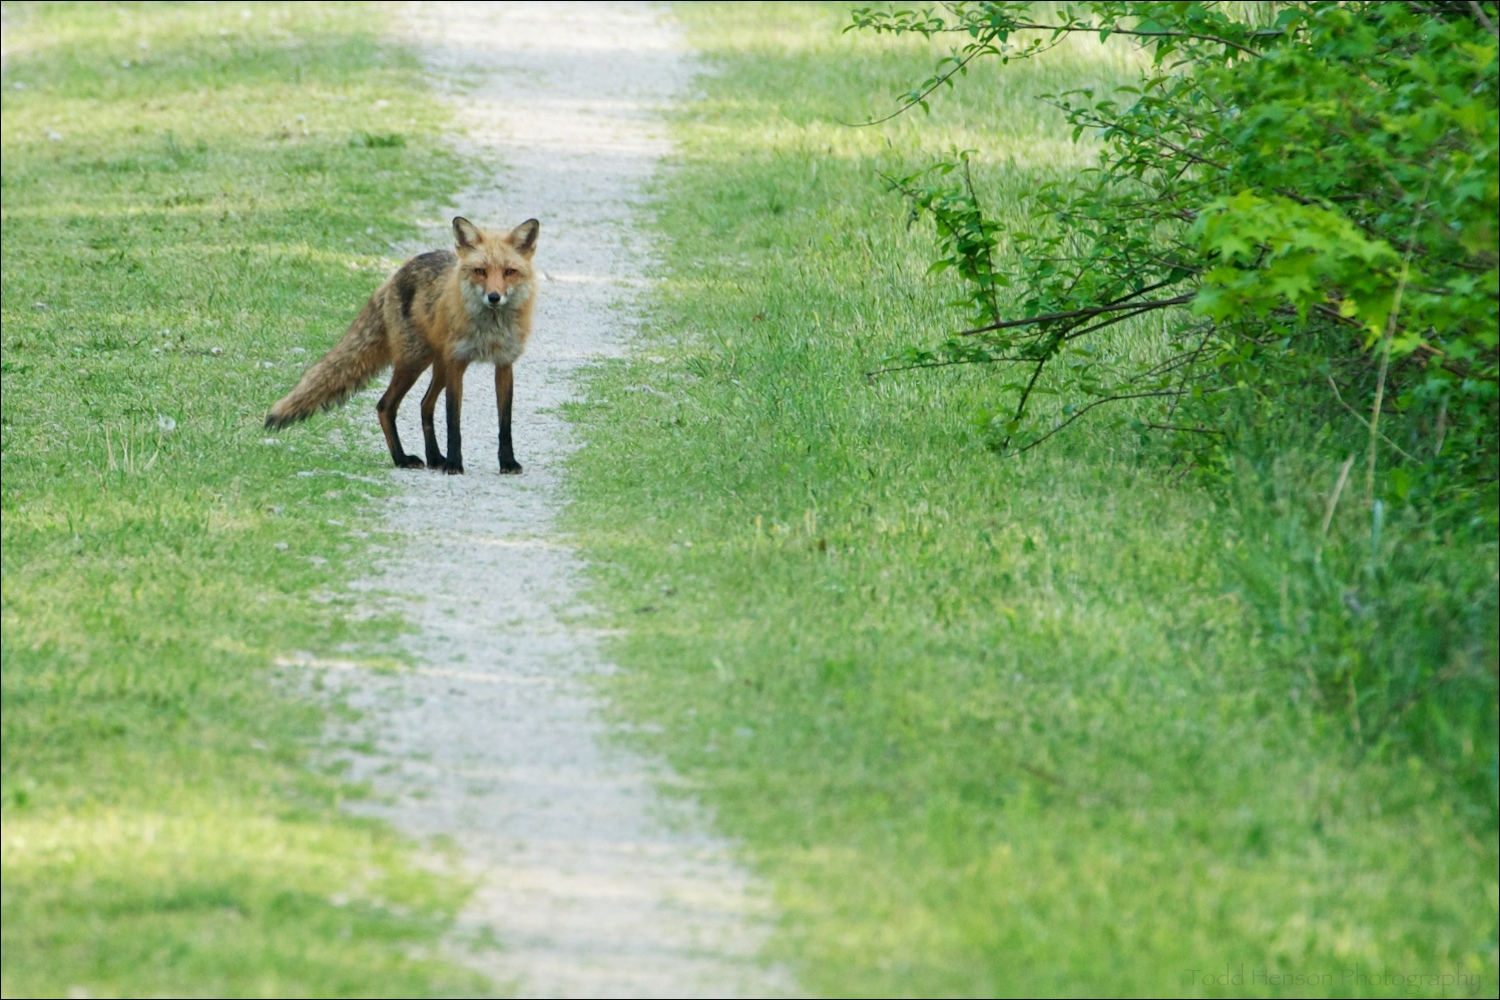 Adult red fox pausing to watch me, then heading back towards the den